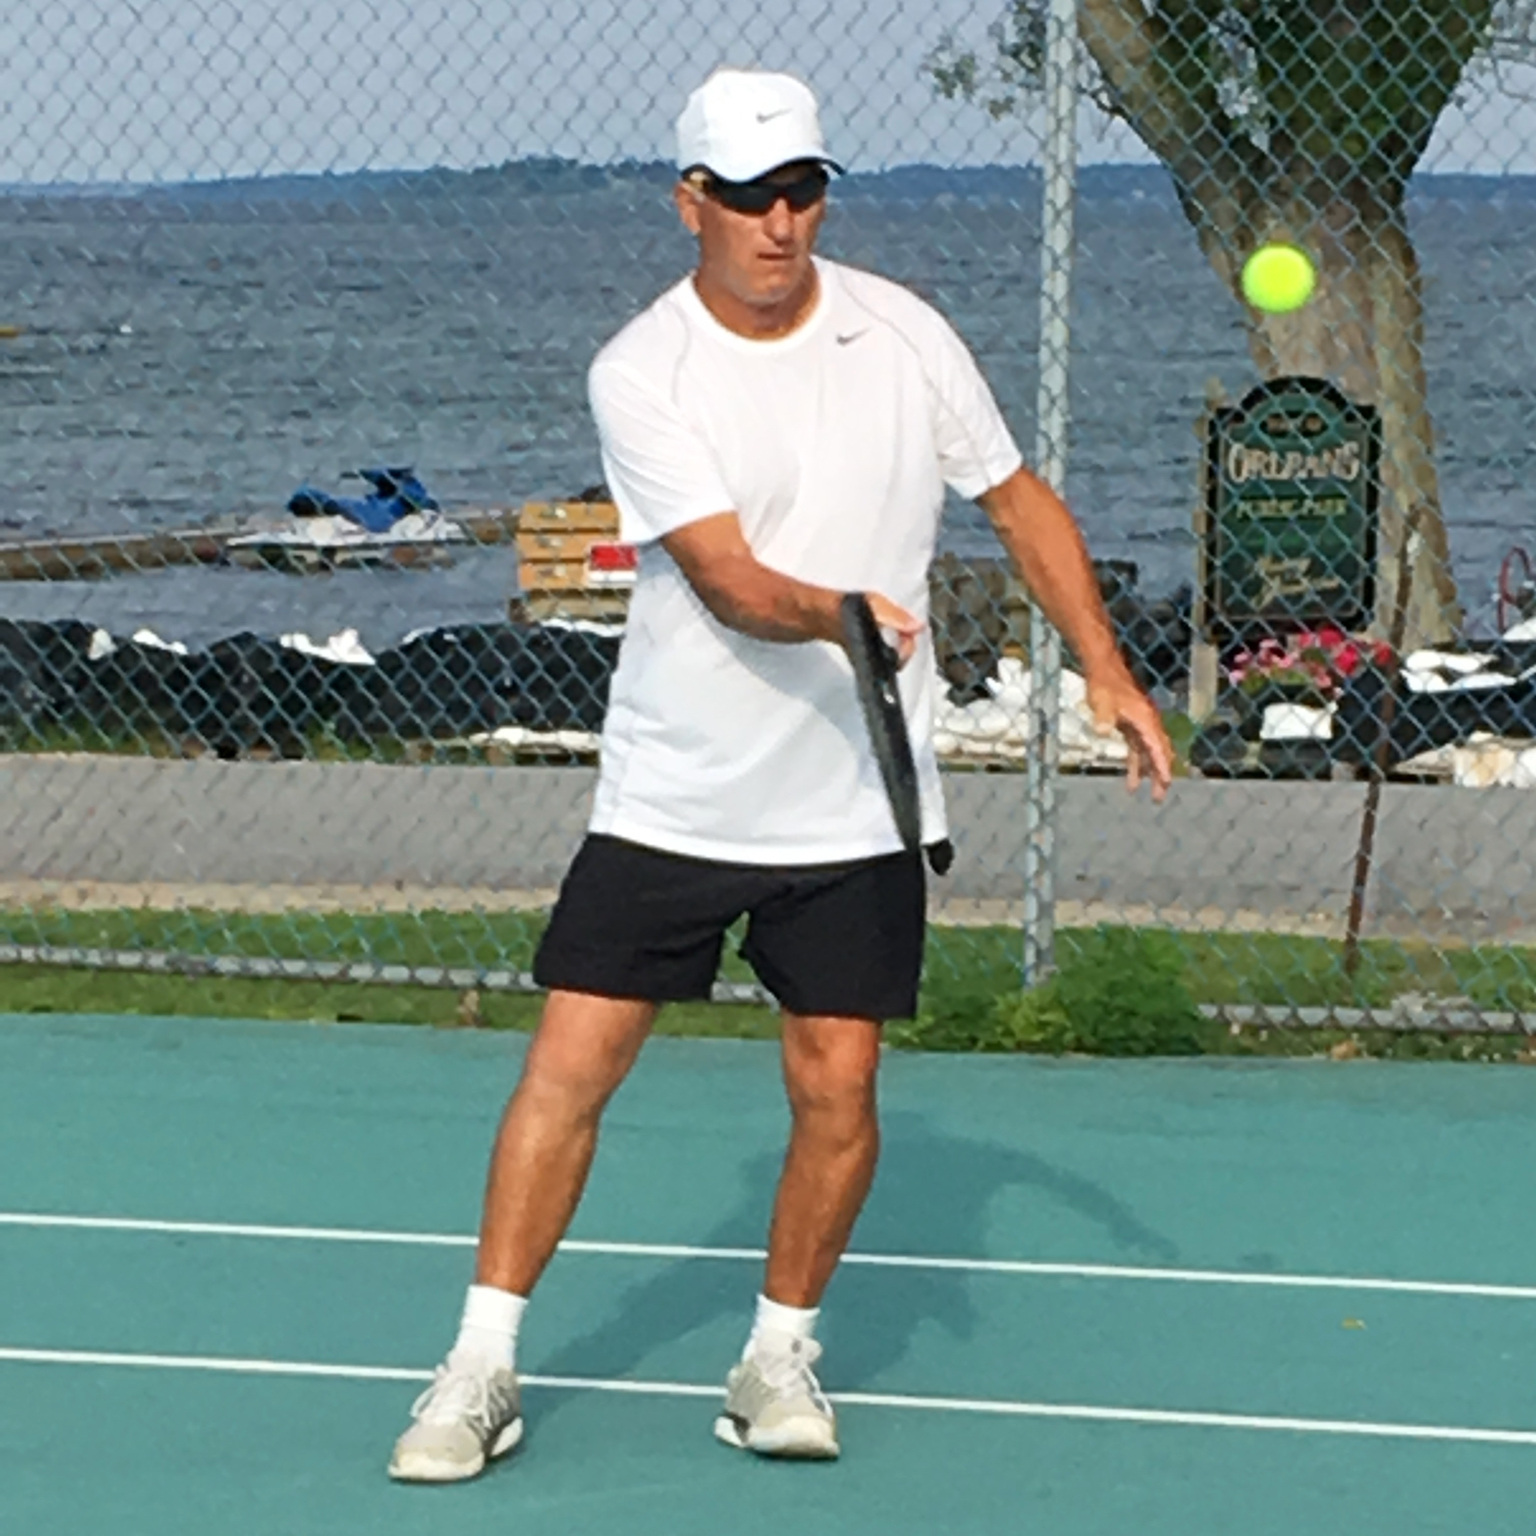 Brian continues to play high-level tennis after back surgery and a knee replacement